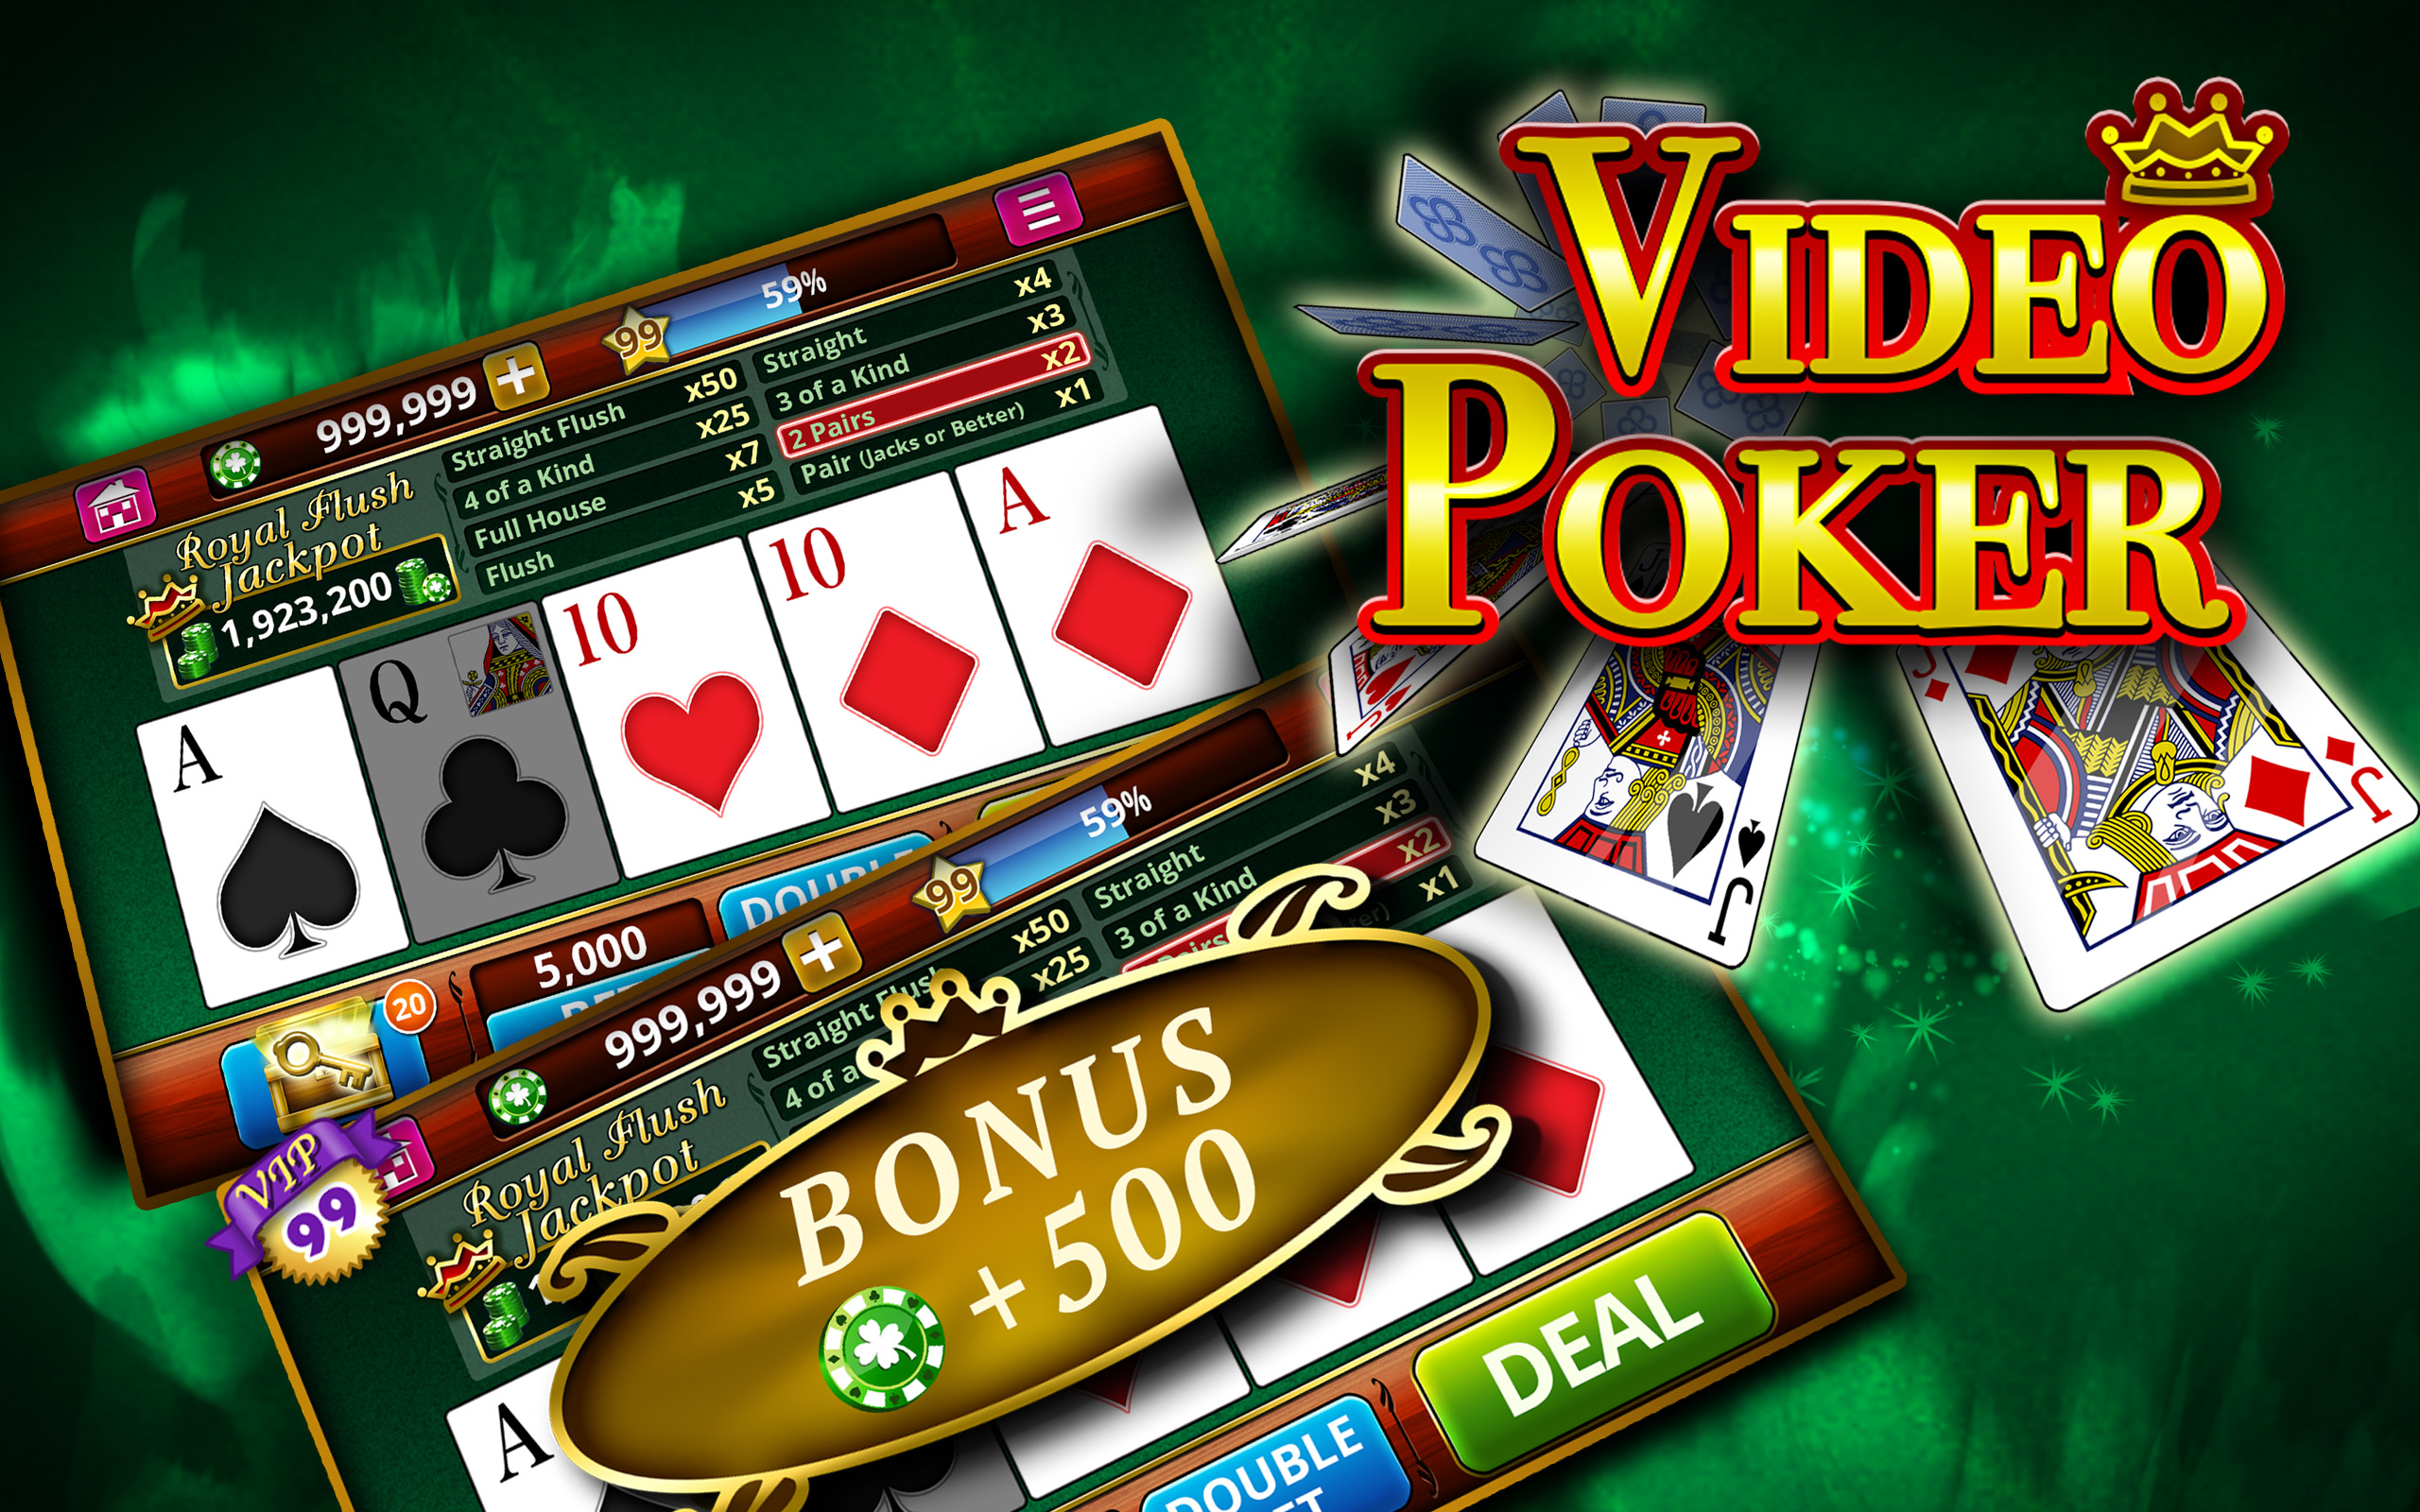 How Video Poker works